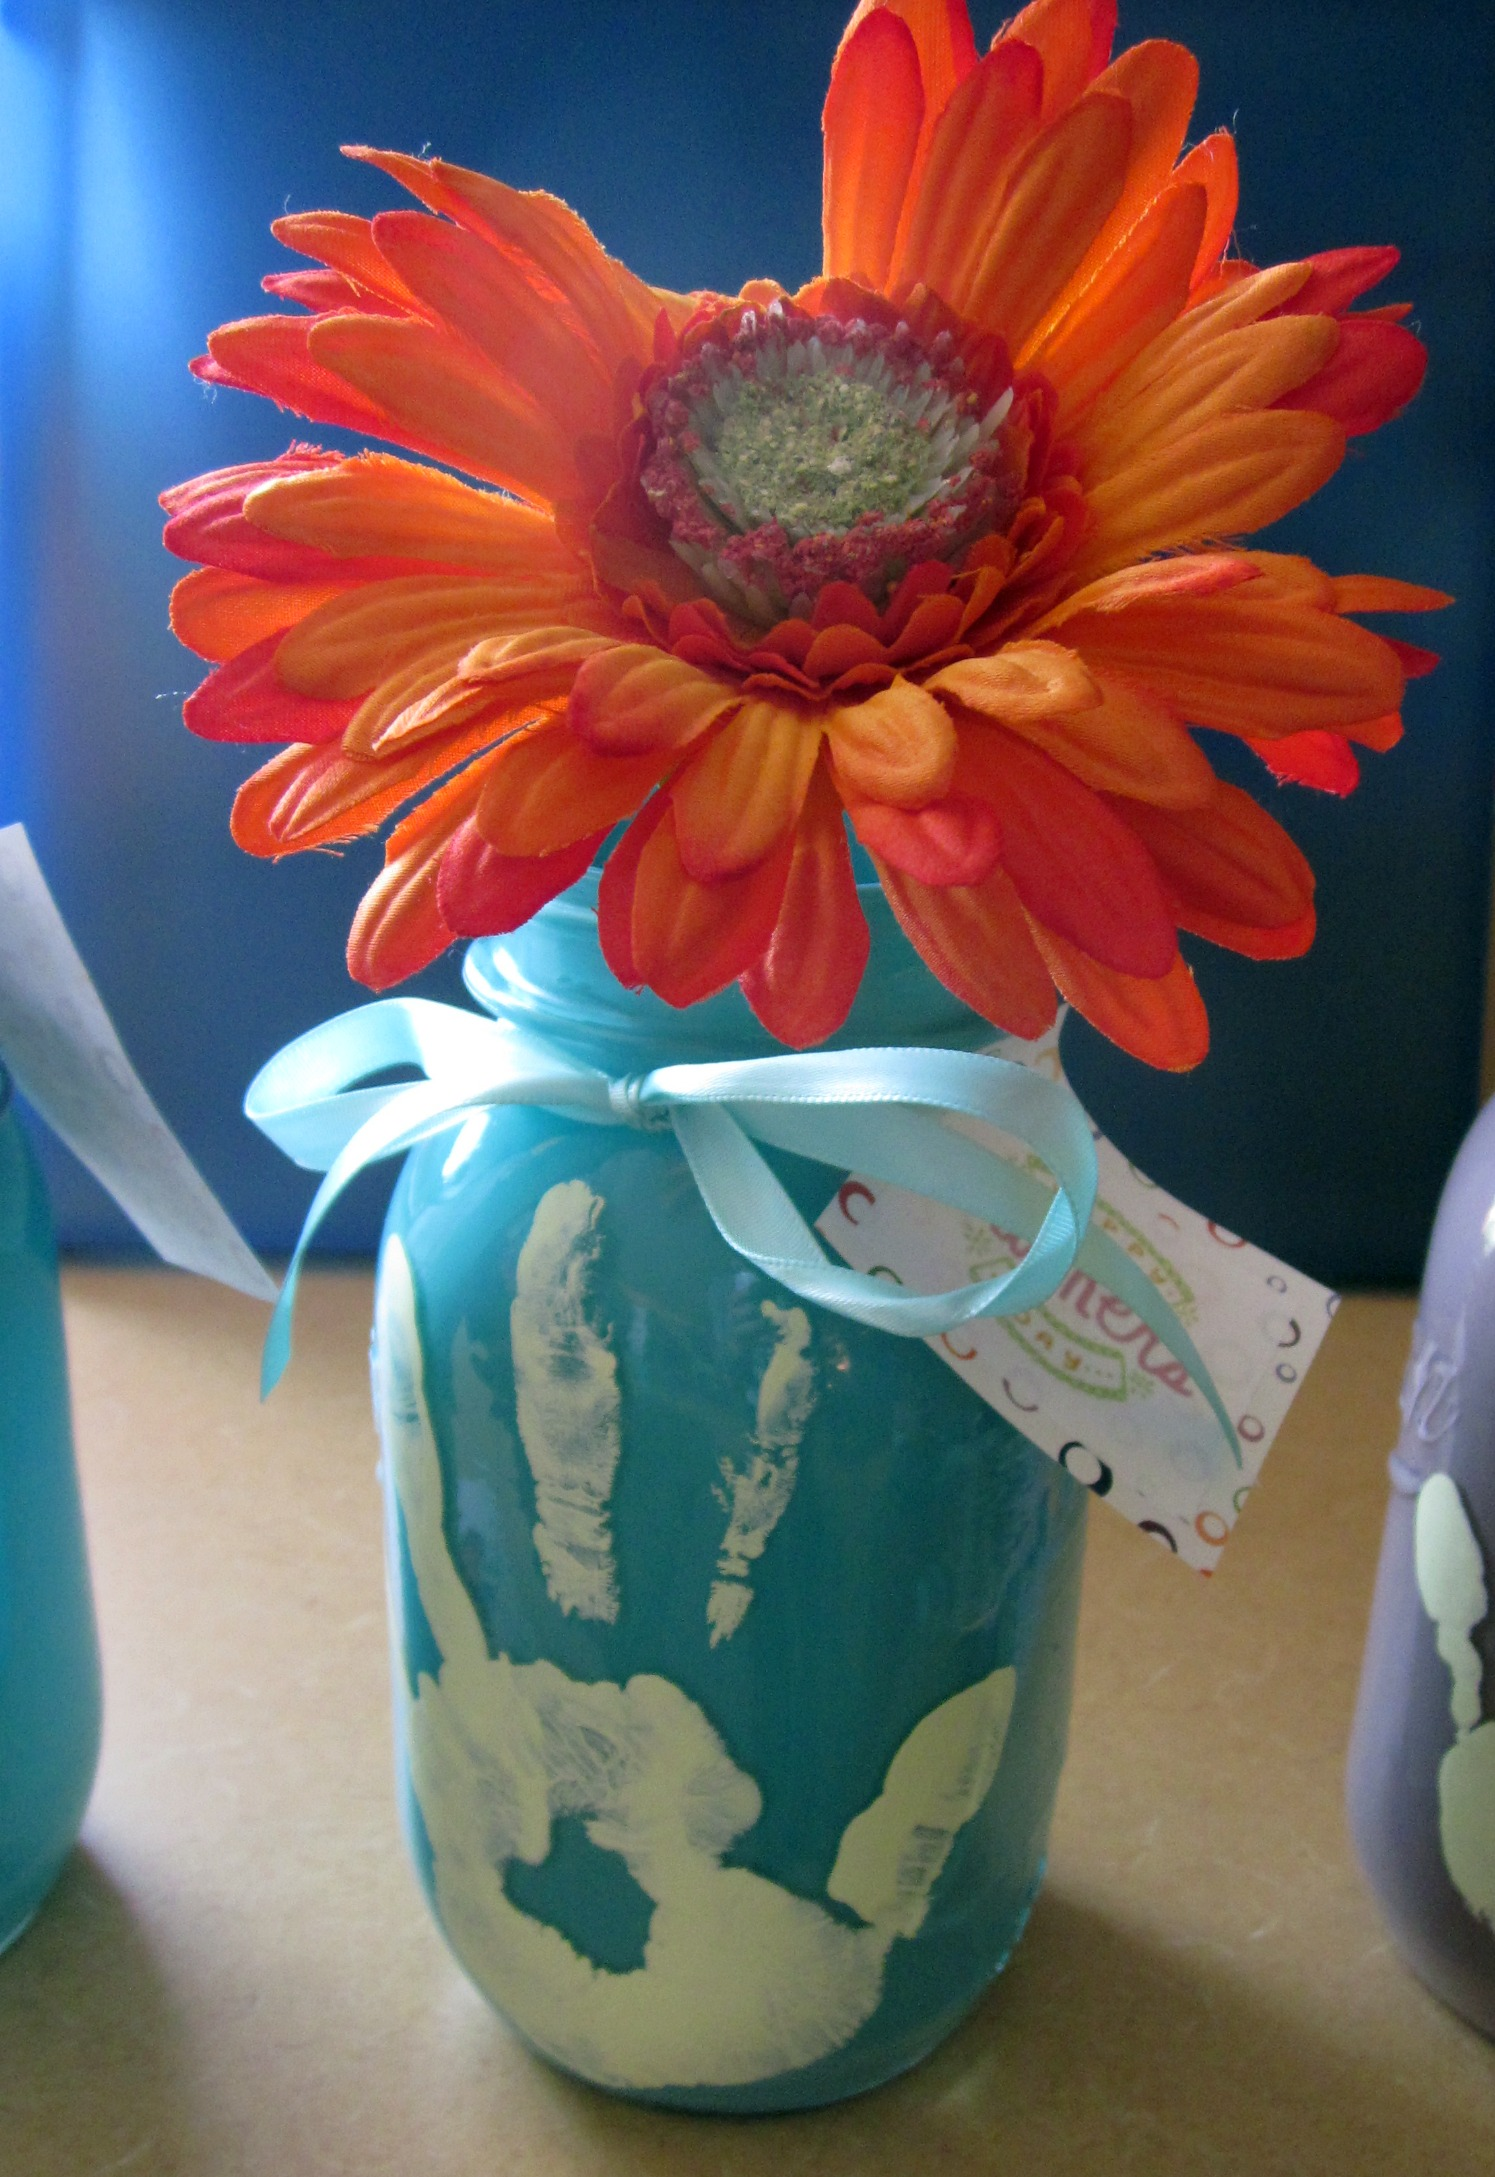 Mothers Day Gifts to Make in Classroom Can Make For Mother 39 s Day